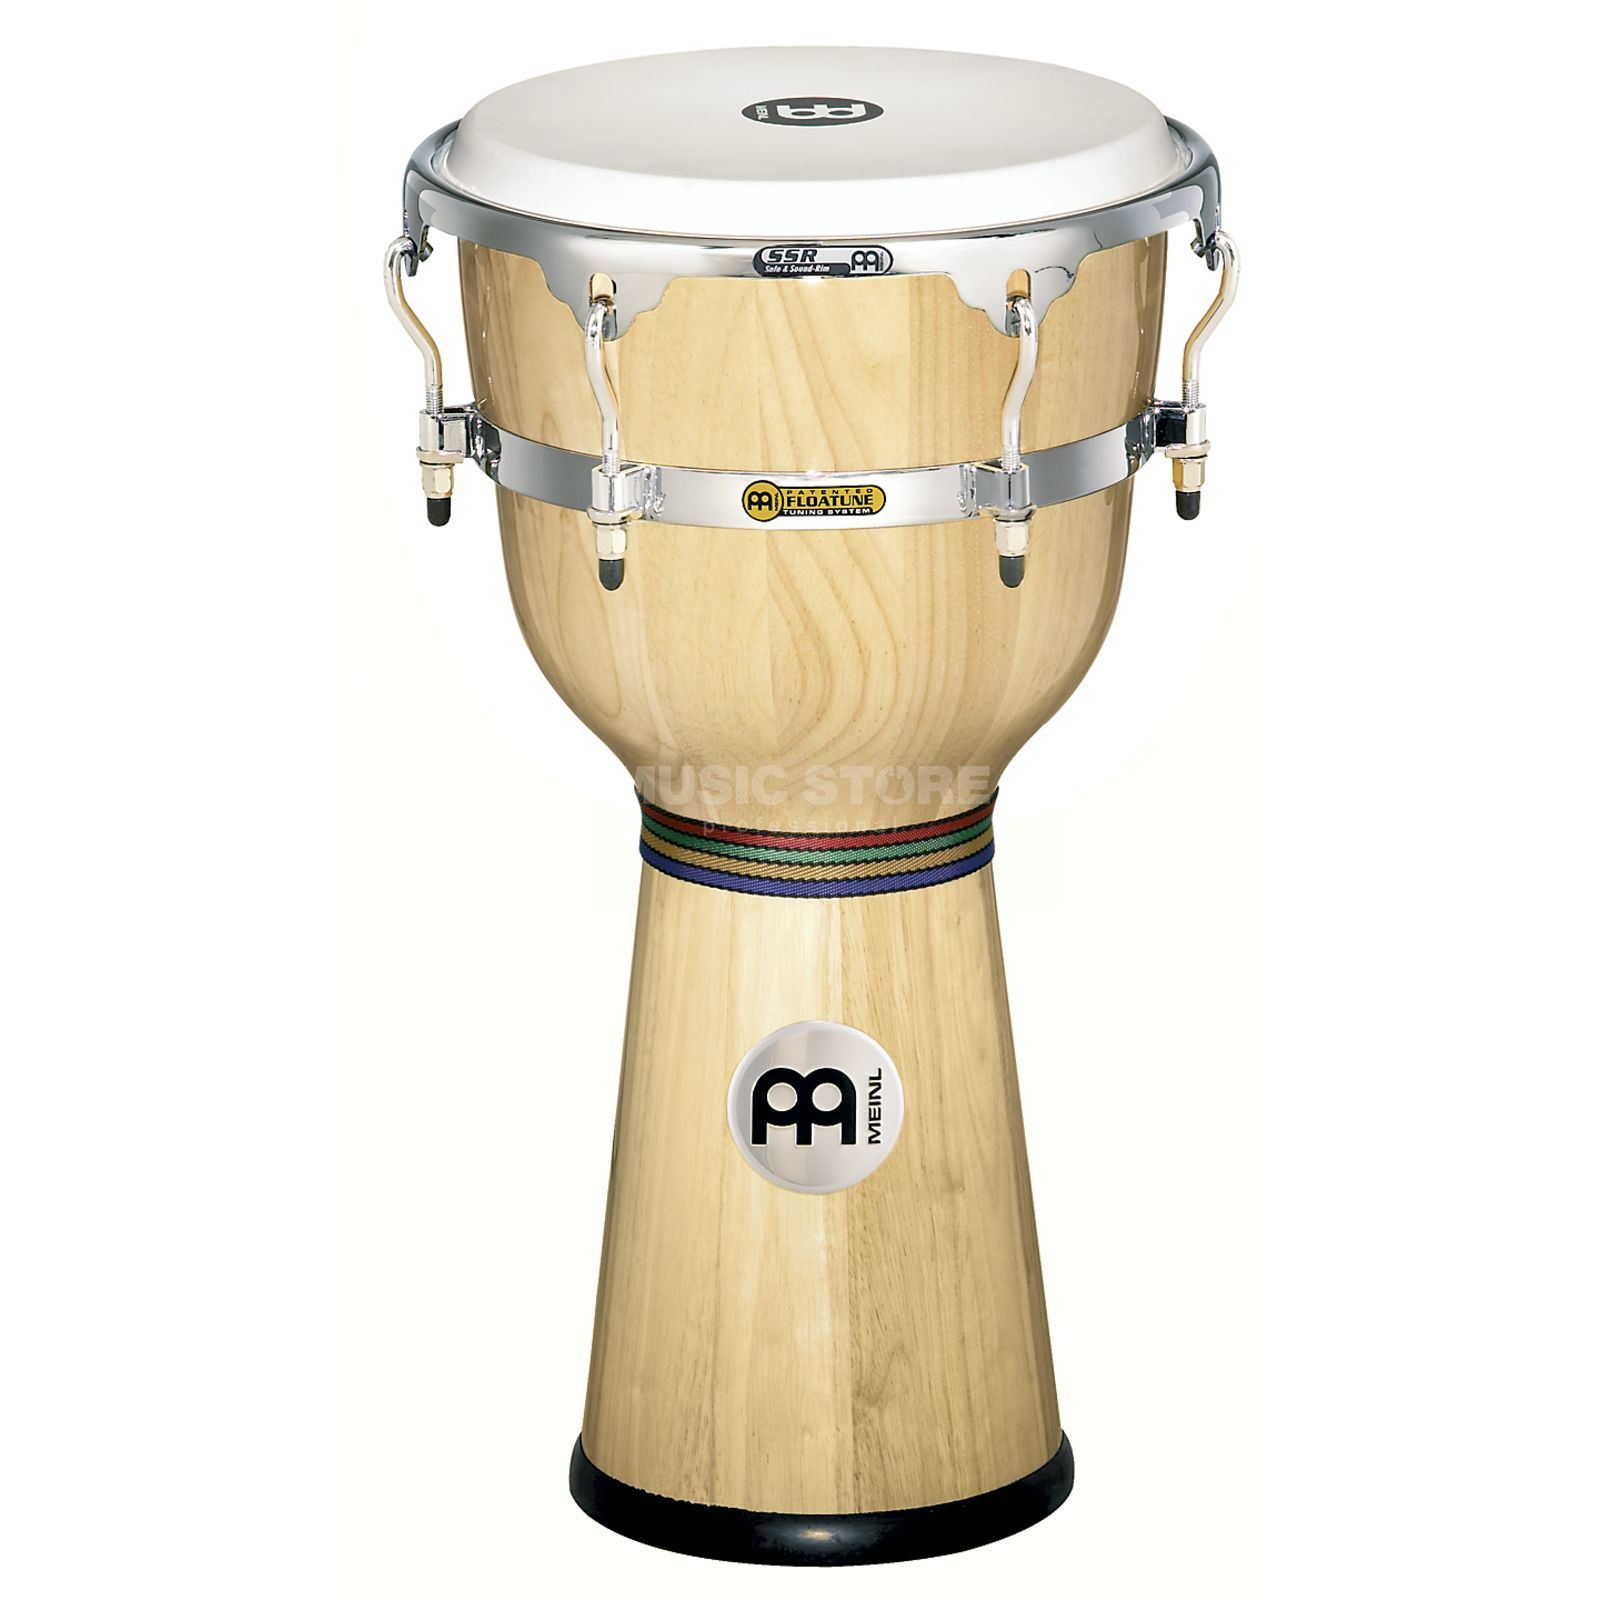 "Meinl Floatune Djembe 12"", DJW3-NT, Natural Product Image"